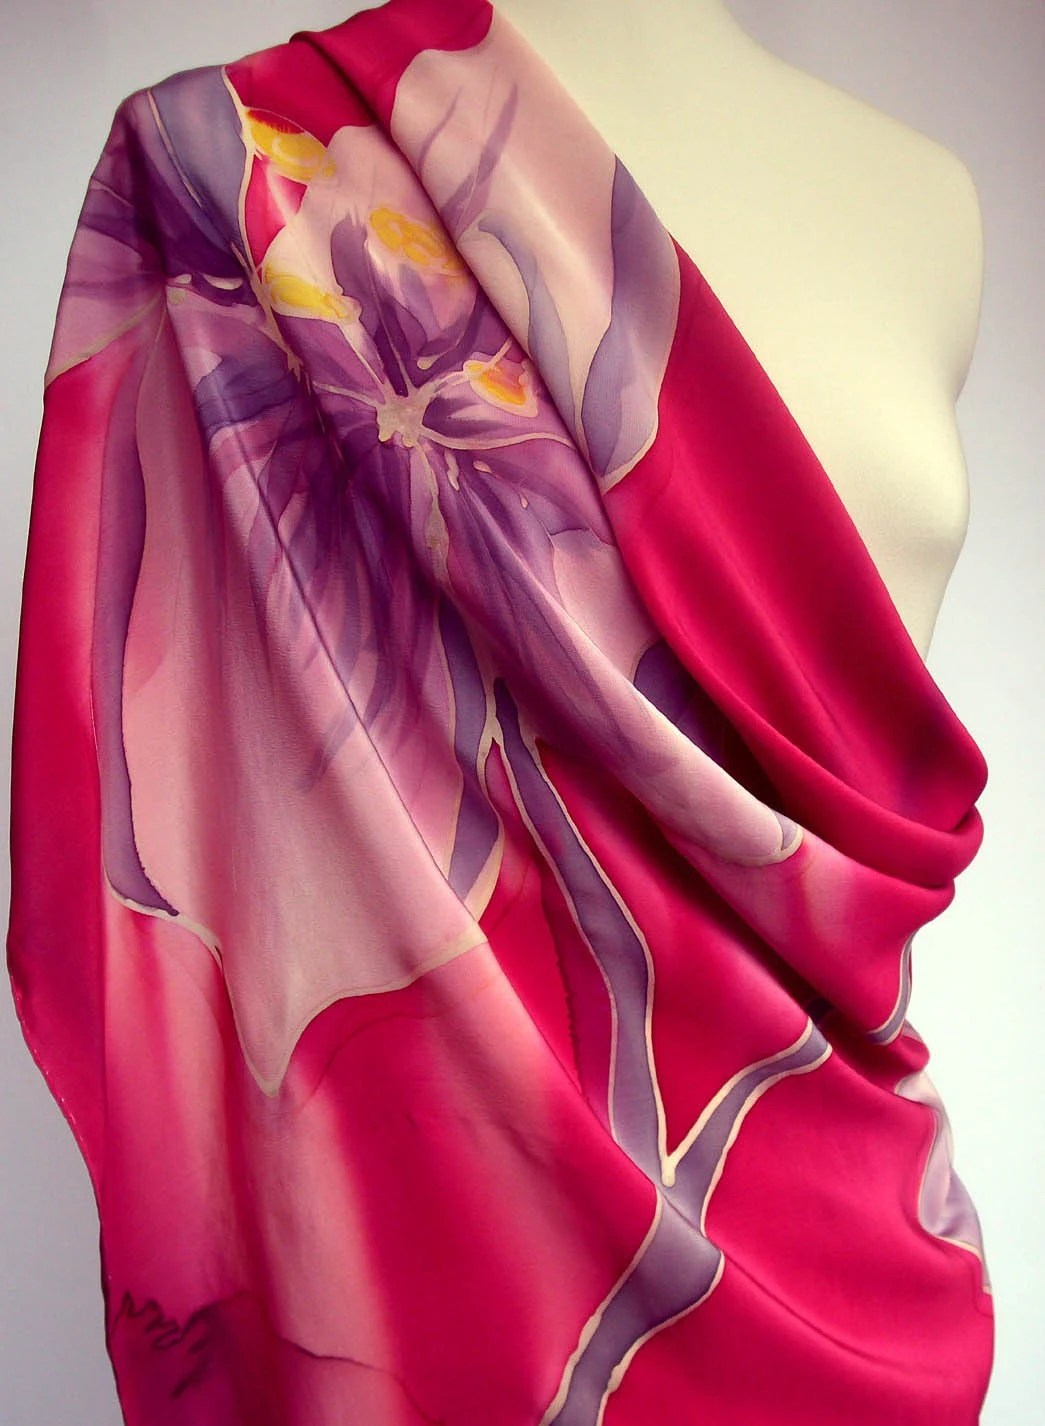 Handpainted Luxurious Crepe de Chine Silk Scarf  Magenta Violet Floral Unique Accessorie Mothers Day Gift